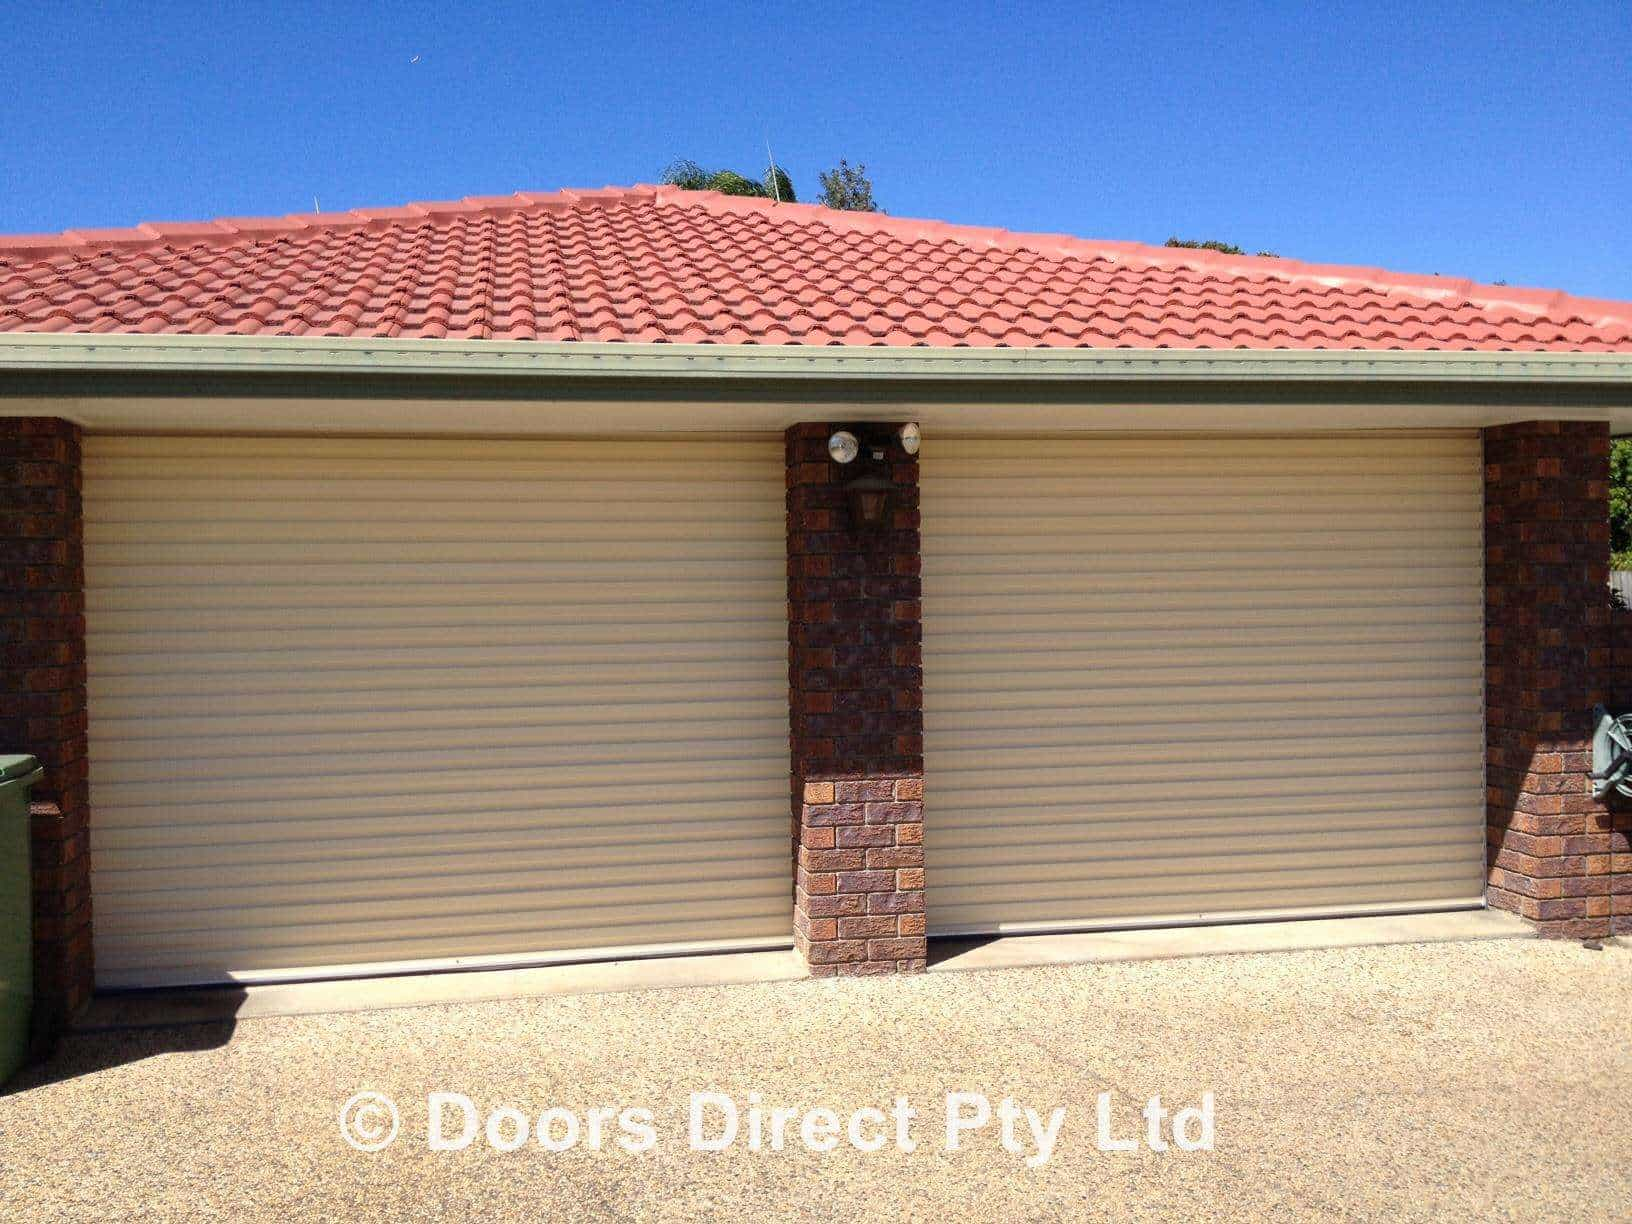 1224 #0757C4 Roller Garage Doors Brisbane Doors Direct image Overhead Doors Direct 38431632